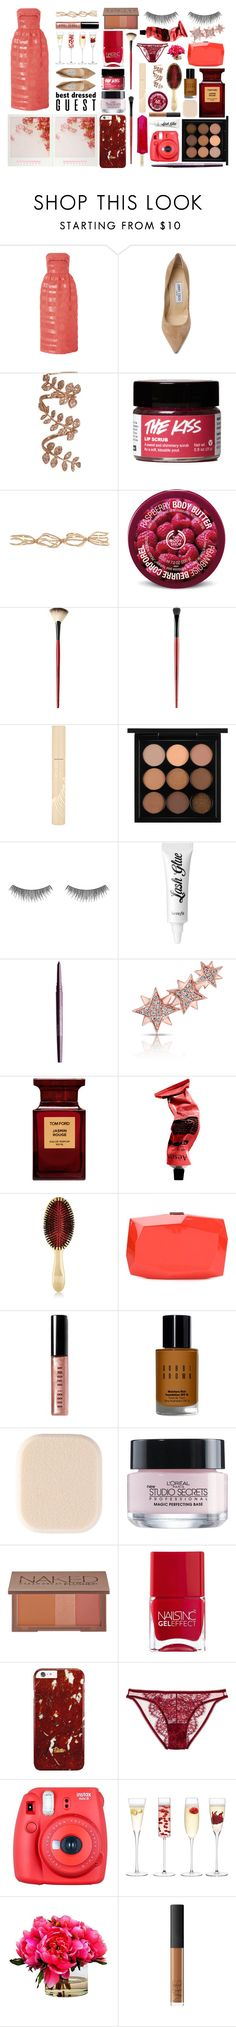 """Best Dressed Guest: Winery"" by miica-olavarria ❤ liked on Polyvore featuring Carolina Herrera, Jimmy Choo, Sidney Chung, Repossi, The Body Shop, Smashbox, Stila, MAC Cosmetics, RMK and Benefit"